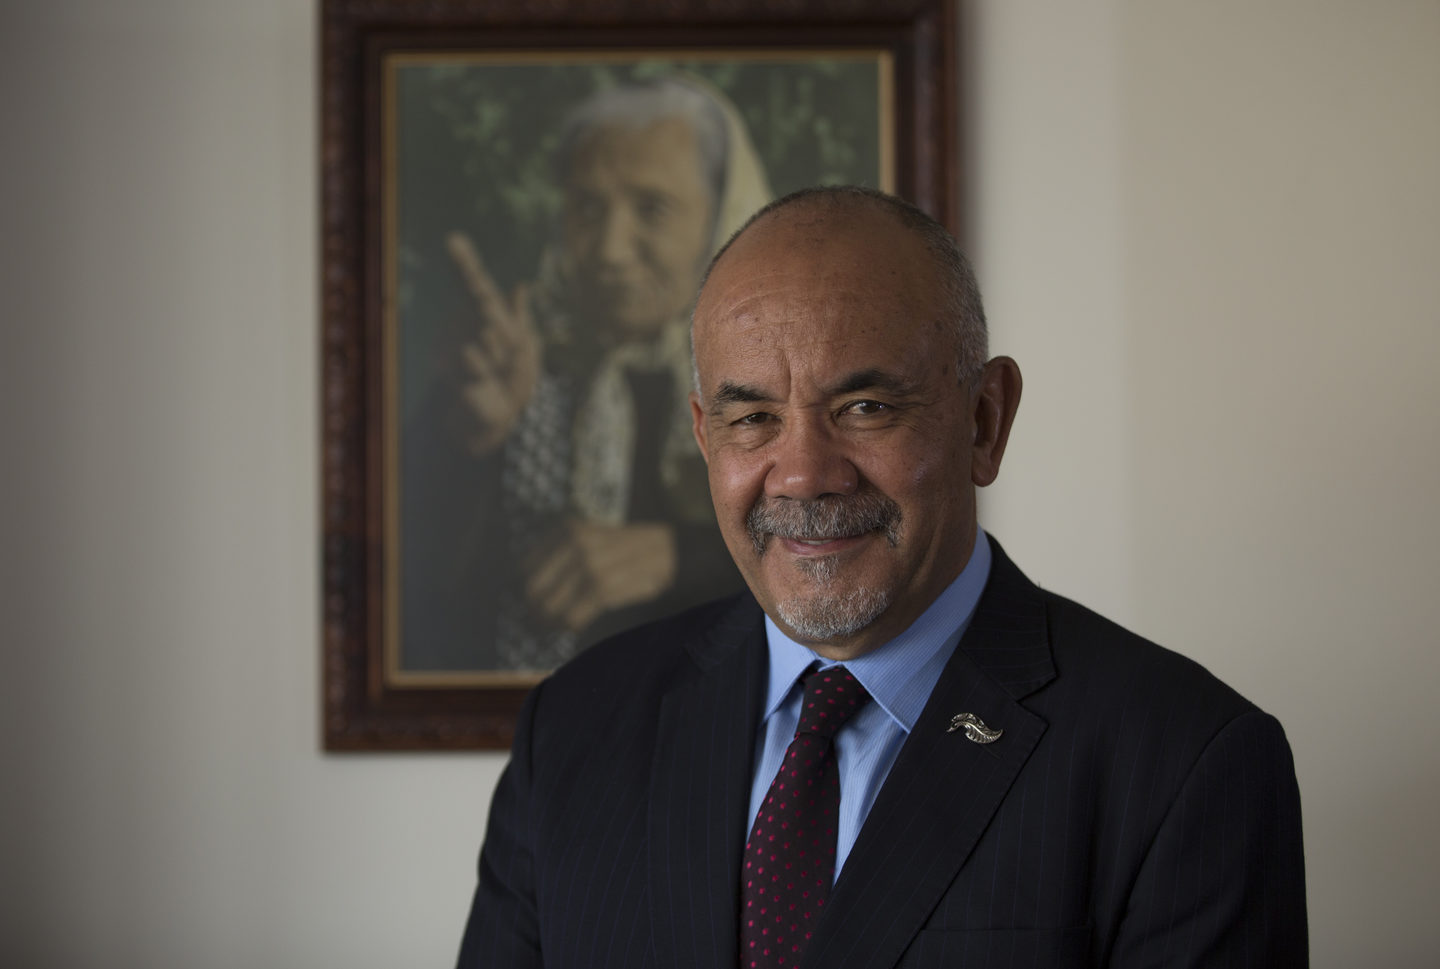 Māori Party co-leader Te Ururoa Flavell